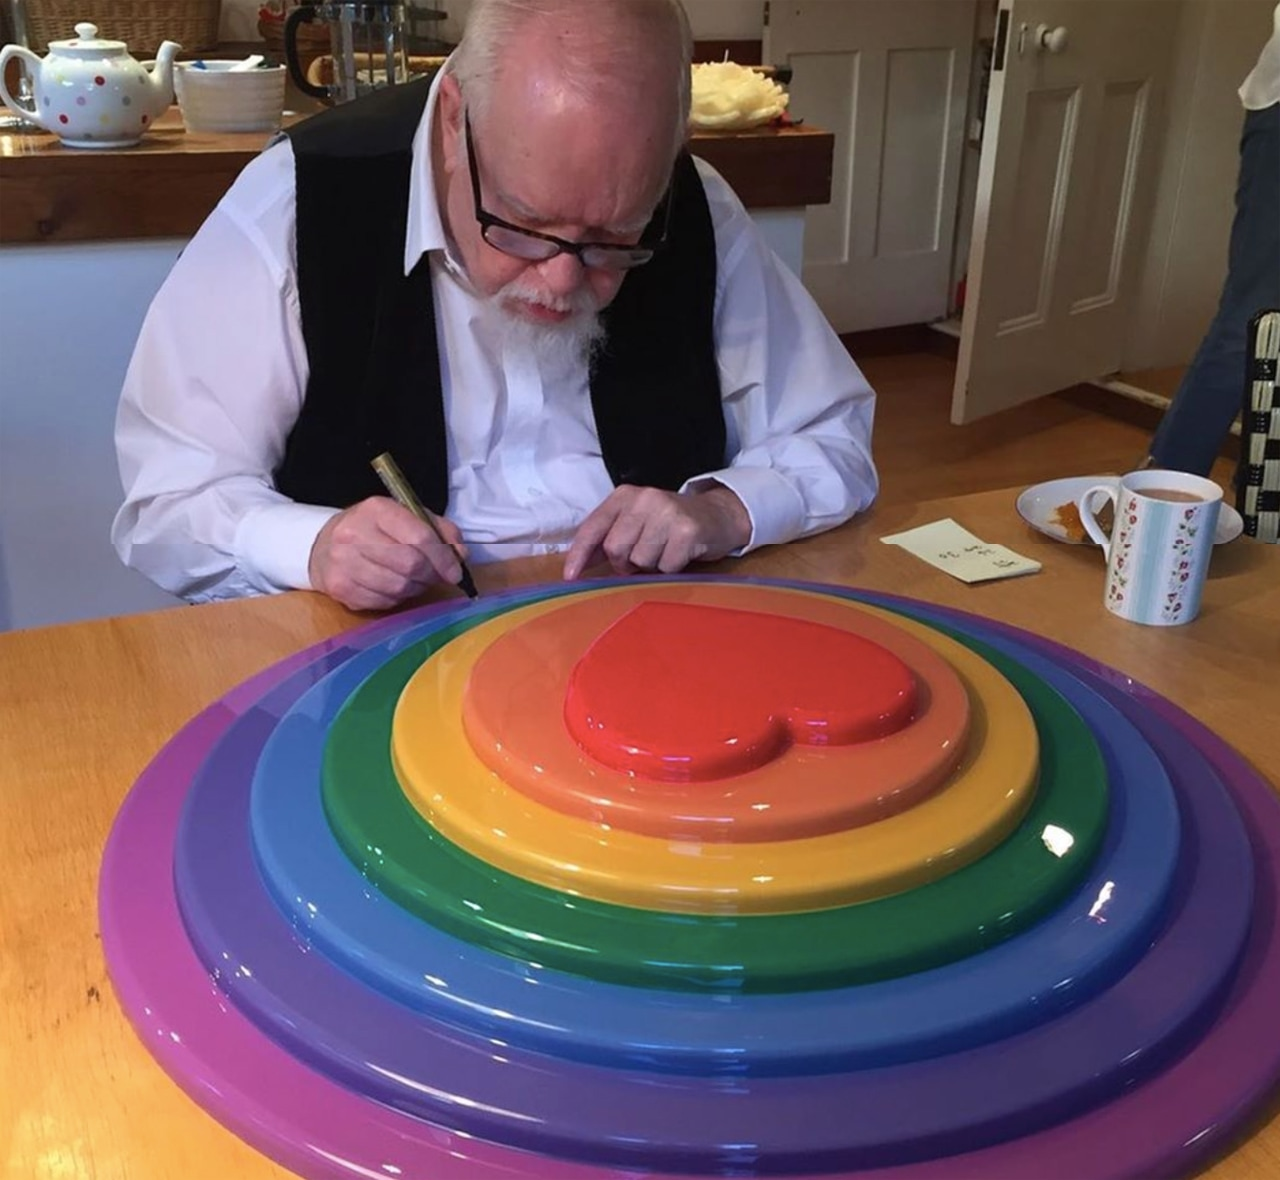 Proceeds from the sale of Peter Blake's 'Rainbow Target' provided by Paul Stolper Gallery and on sale at the London Original Print Fair will go equally to the charity Refuge and the Graeae Theatre Company. Image: Courtesy of Paul Stolper Gallery